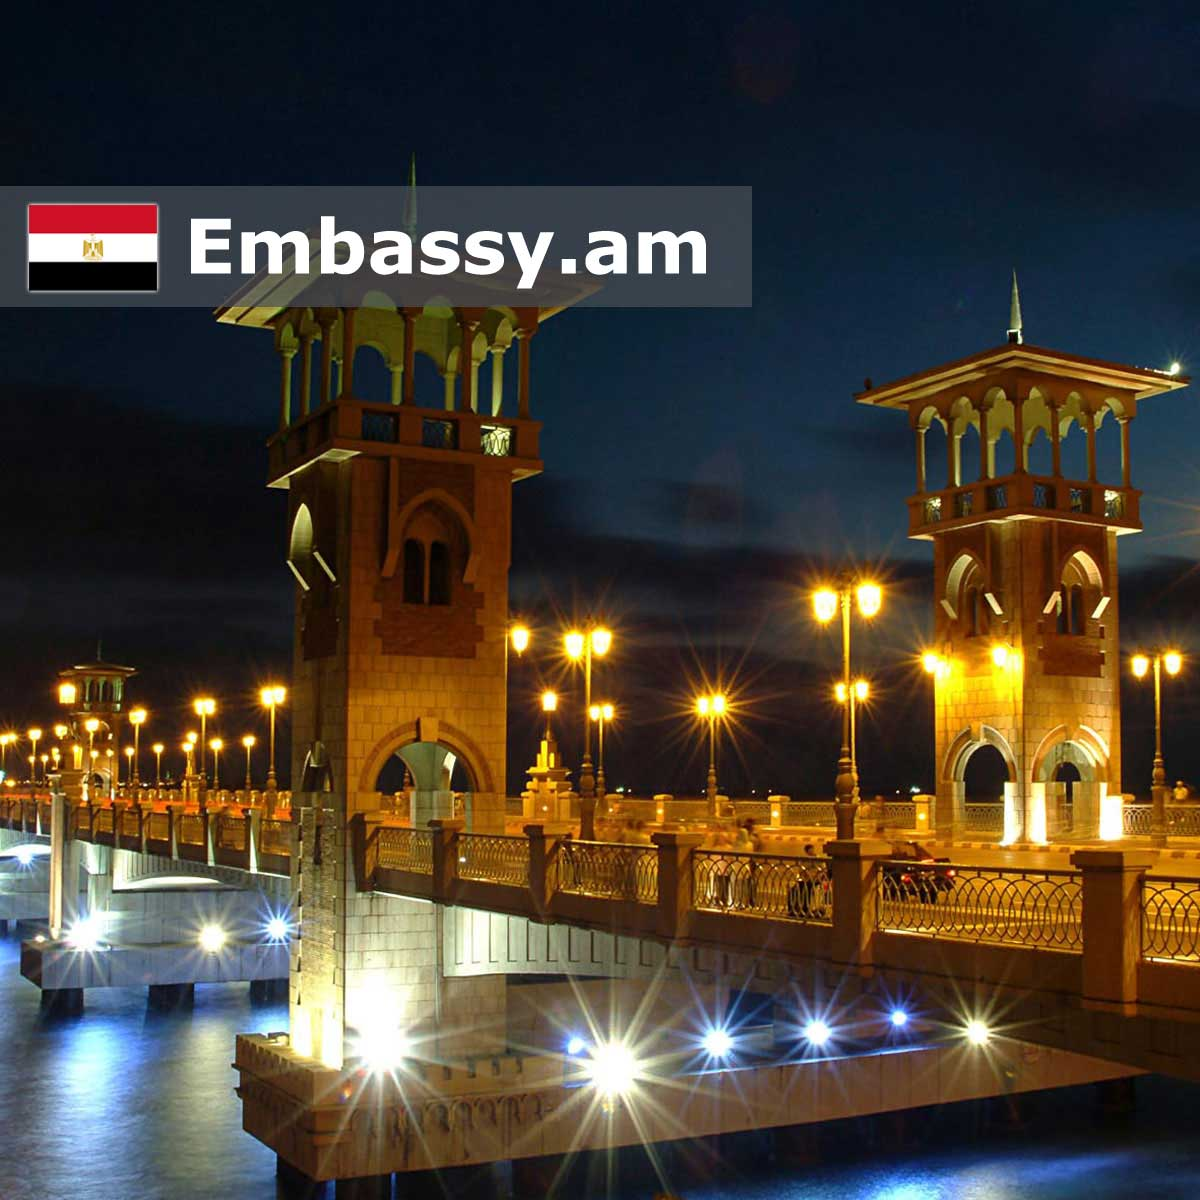 Hotels in Egypt - Embassy.am